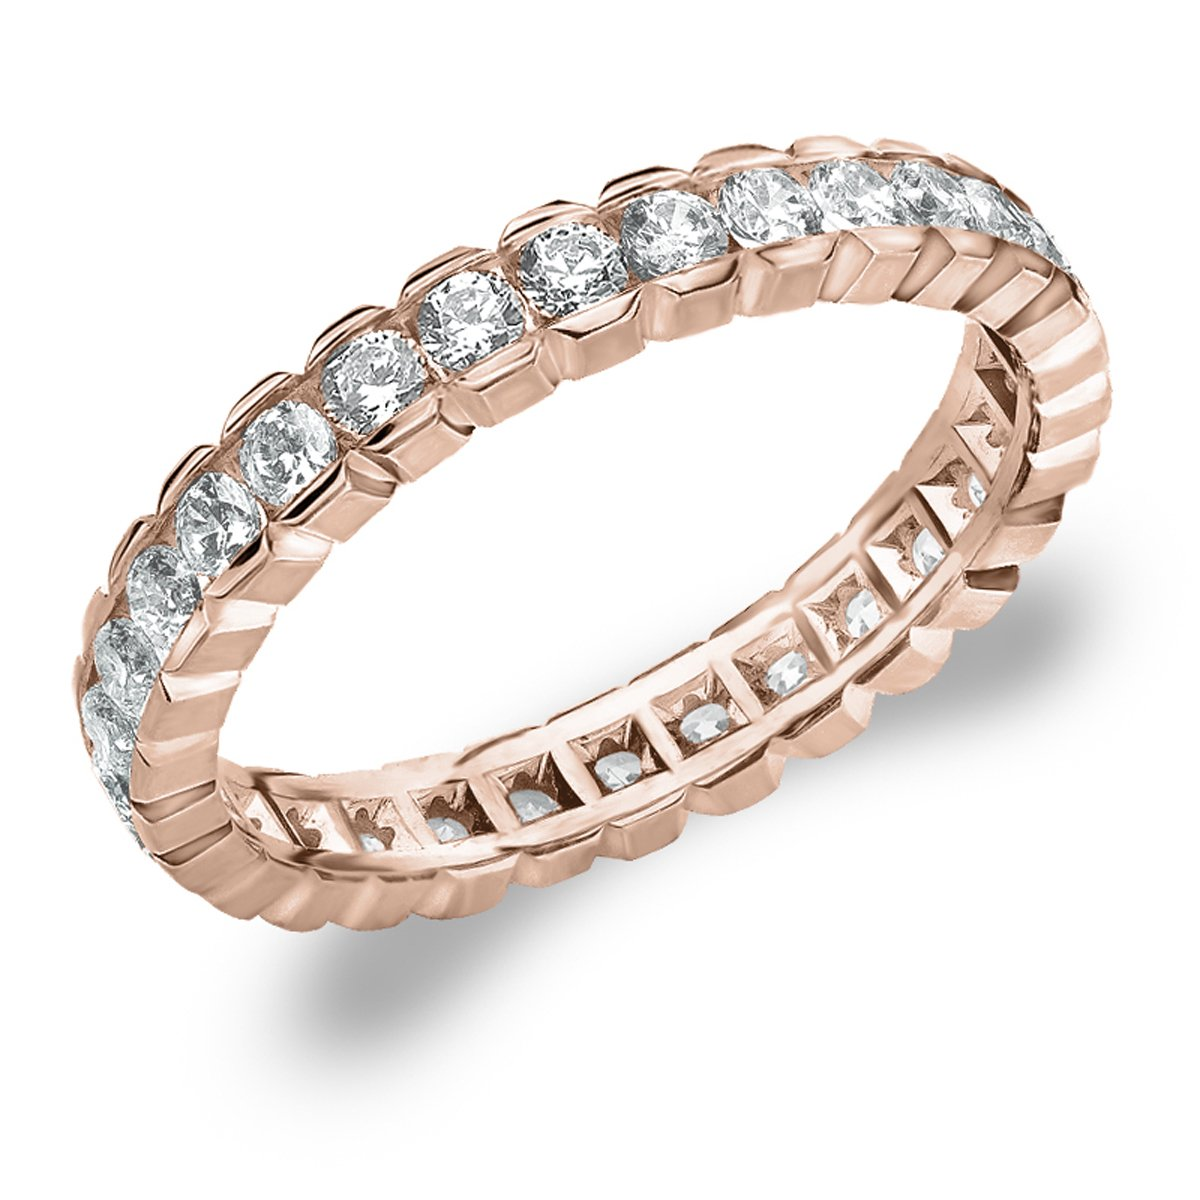 Eternity Wedding Bands 1.0 CTTW Diamond Eternity Ring, 1ct Wedding Anniversary Ring in 10K Rose Gold - Finger Size 7.25 by Eternity Wedding Bands